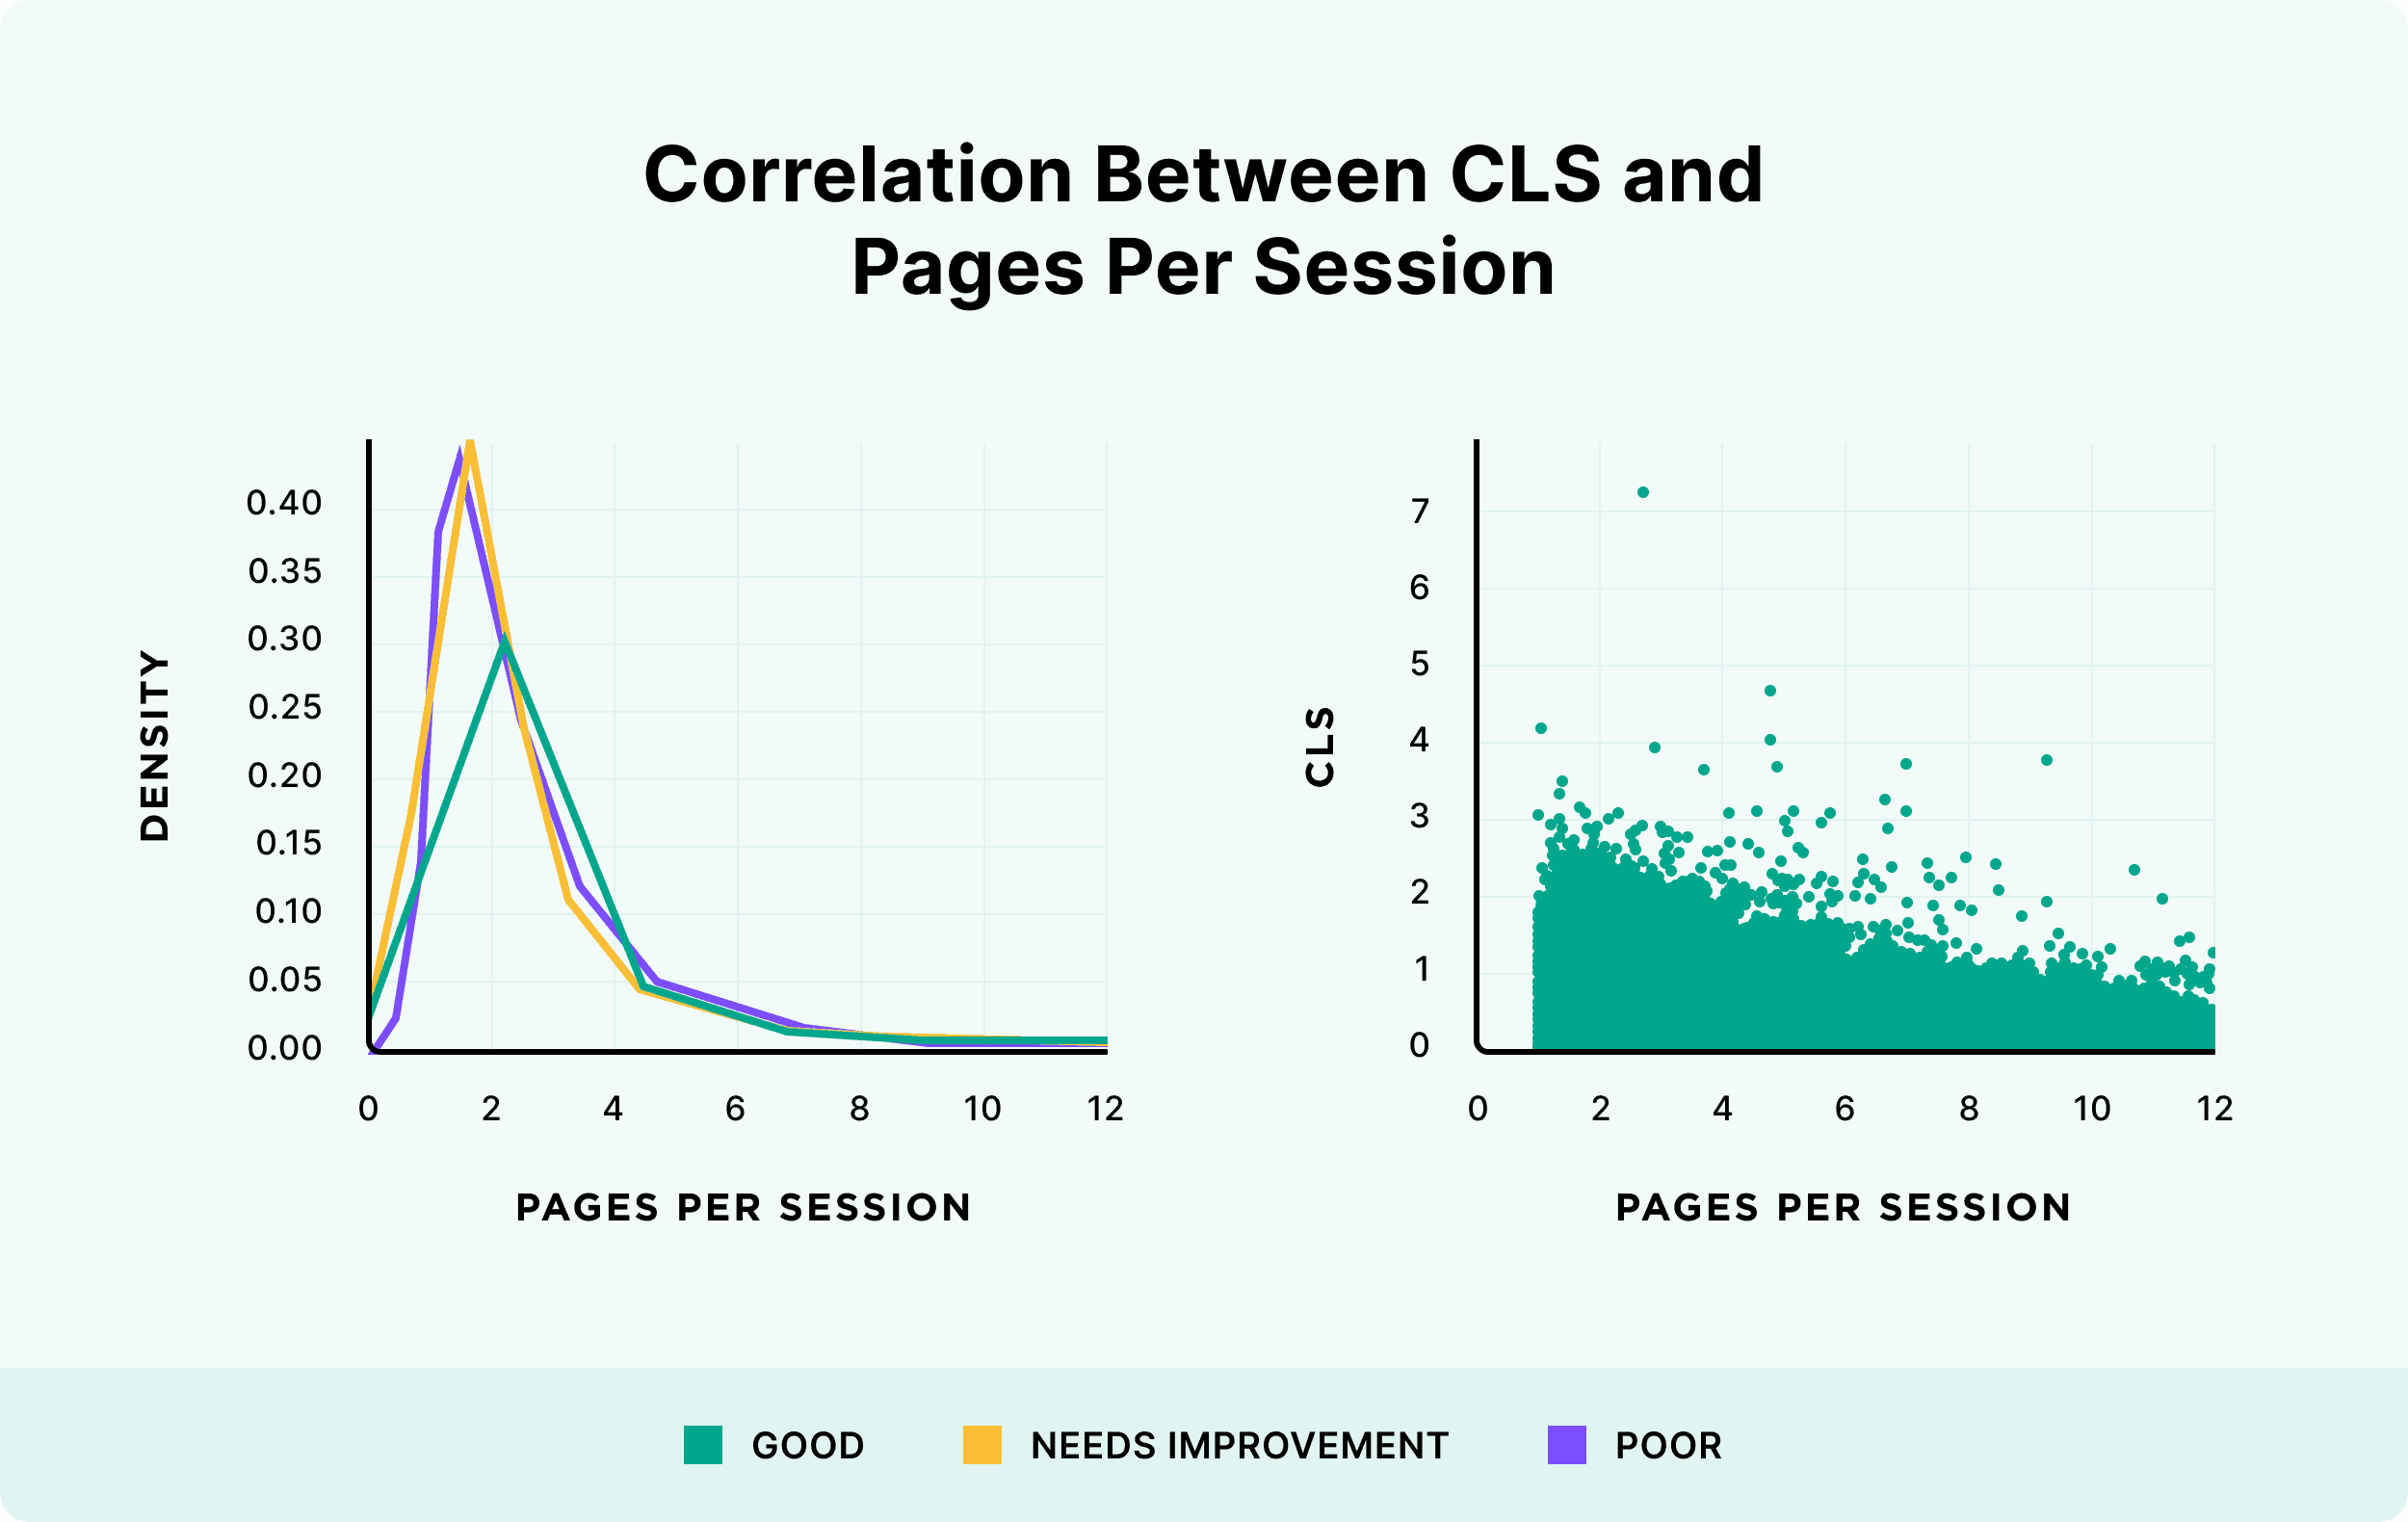 Correlation between CLS and pages per session